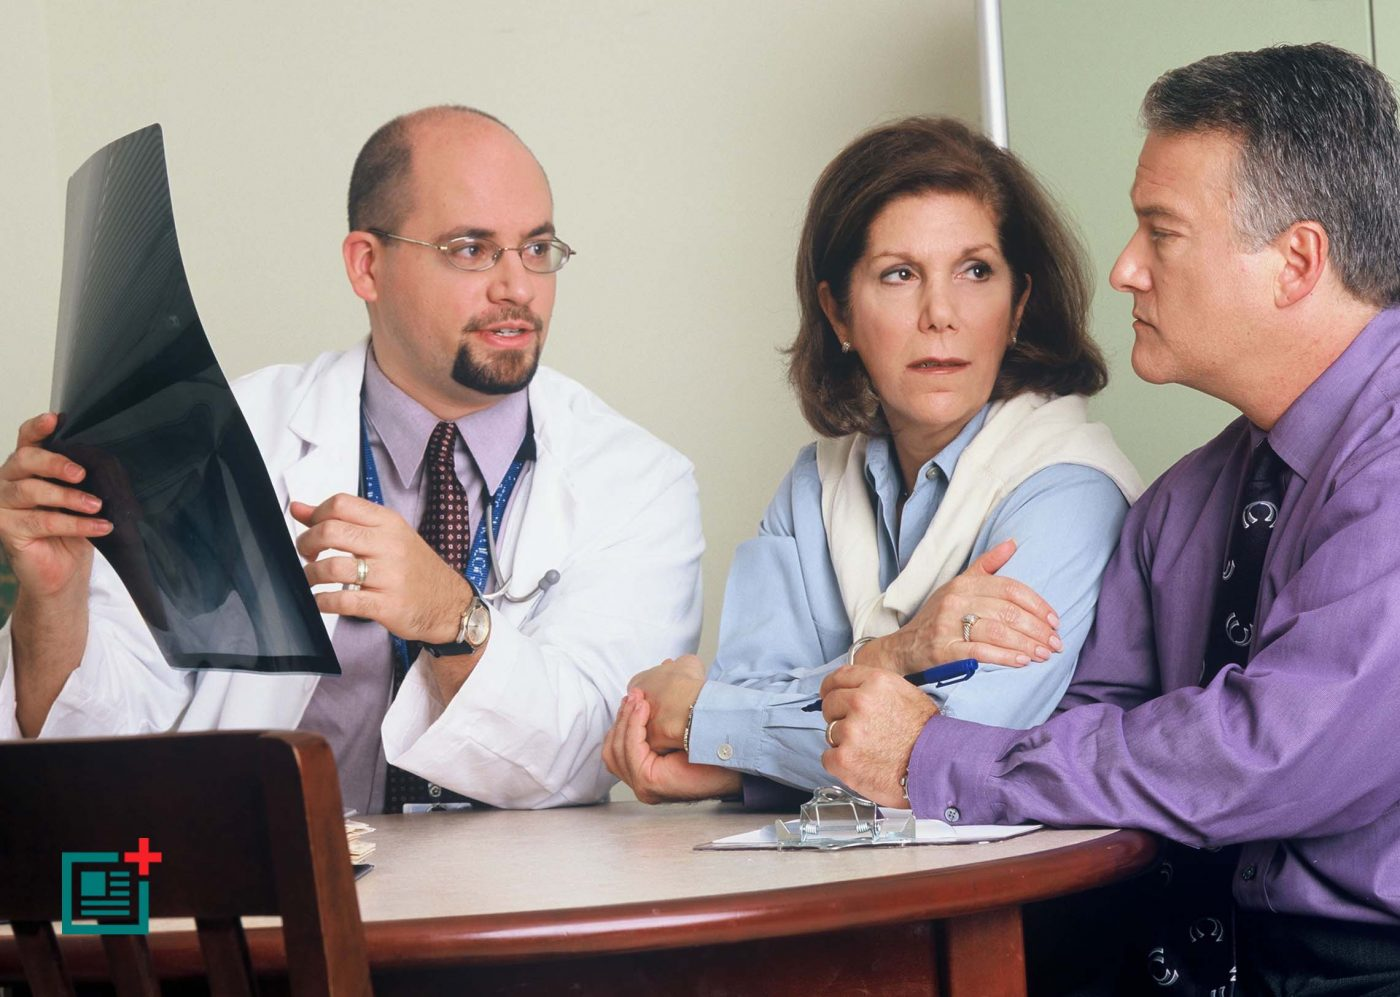 Shared Decision Making Can Help Save Lives In Patients With Chest Pain